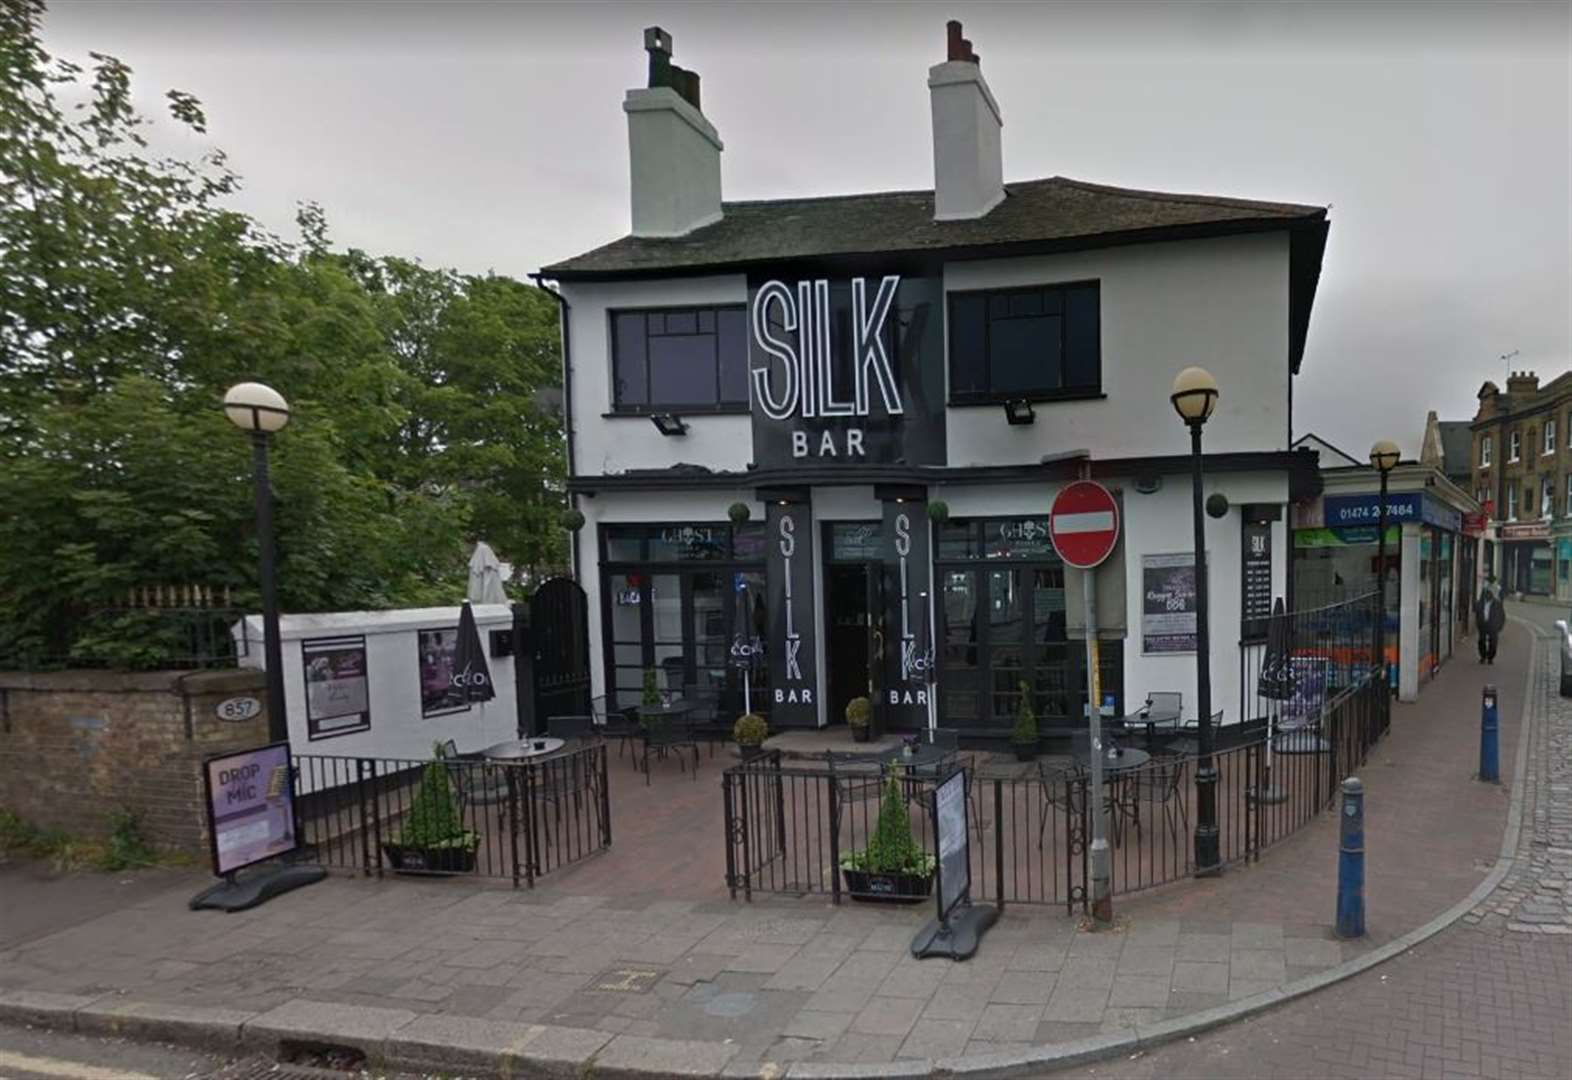 Man charged after bar 'brawl'